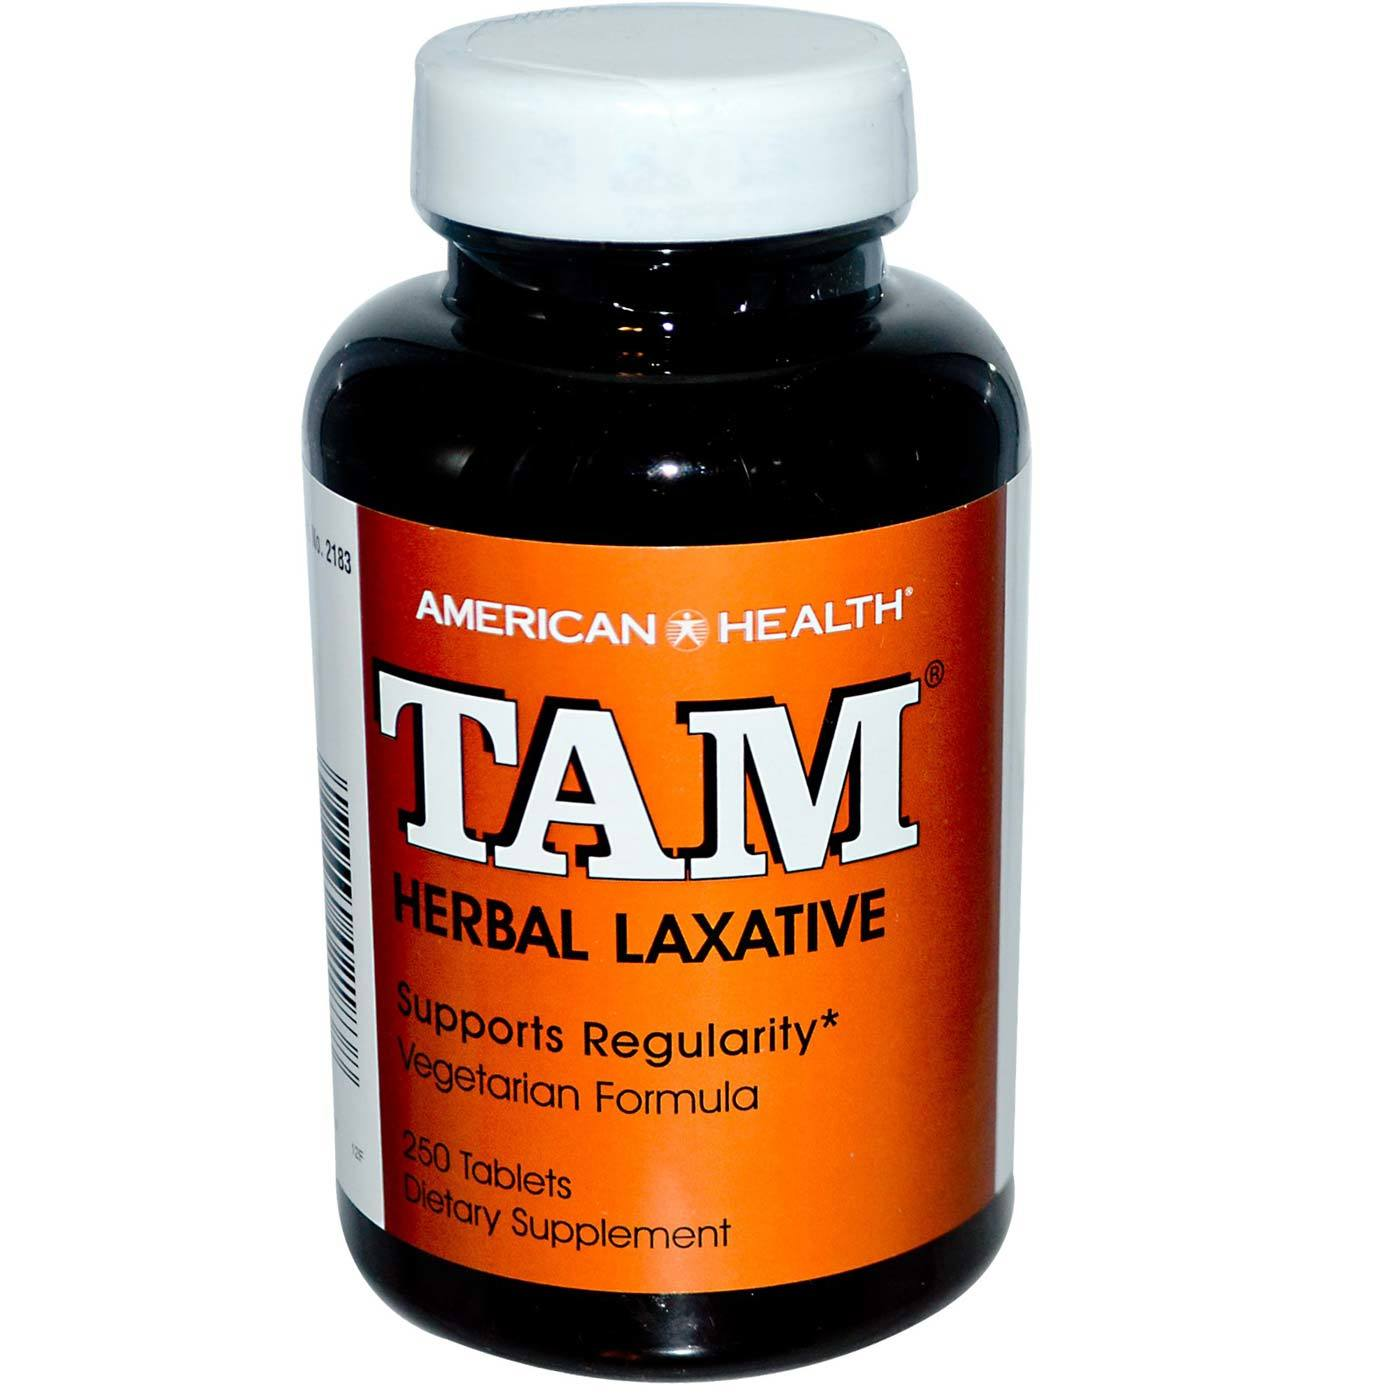 American Health Tam Herbal Laxative 100 Tablets